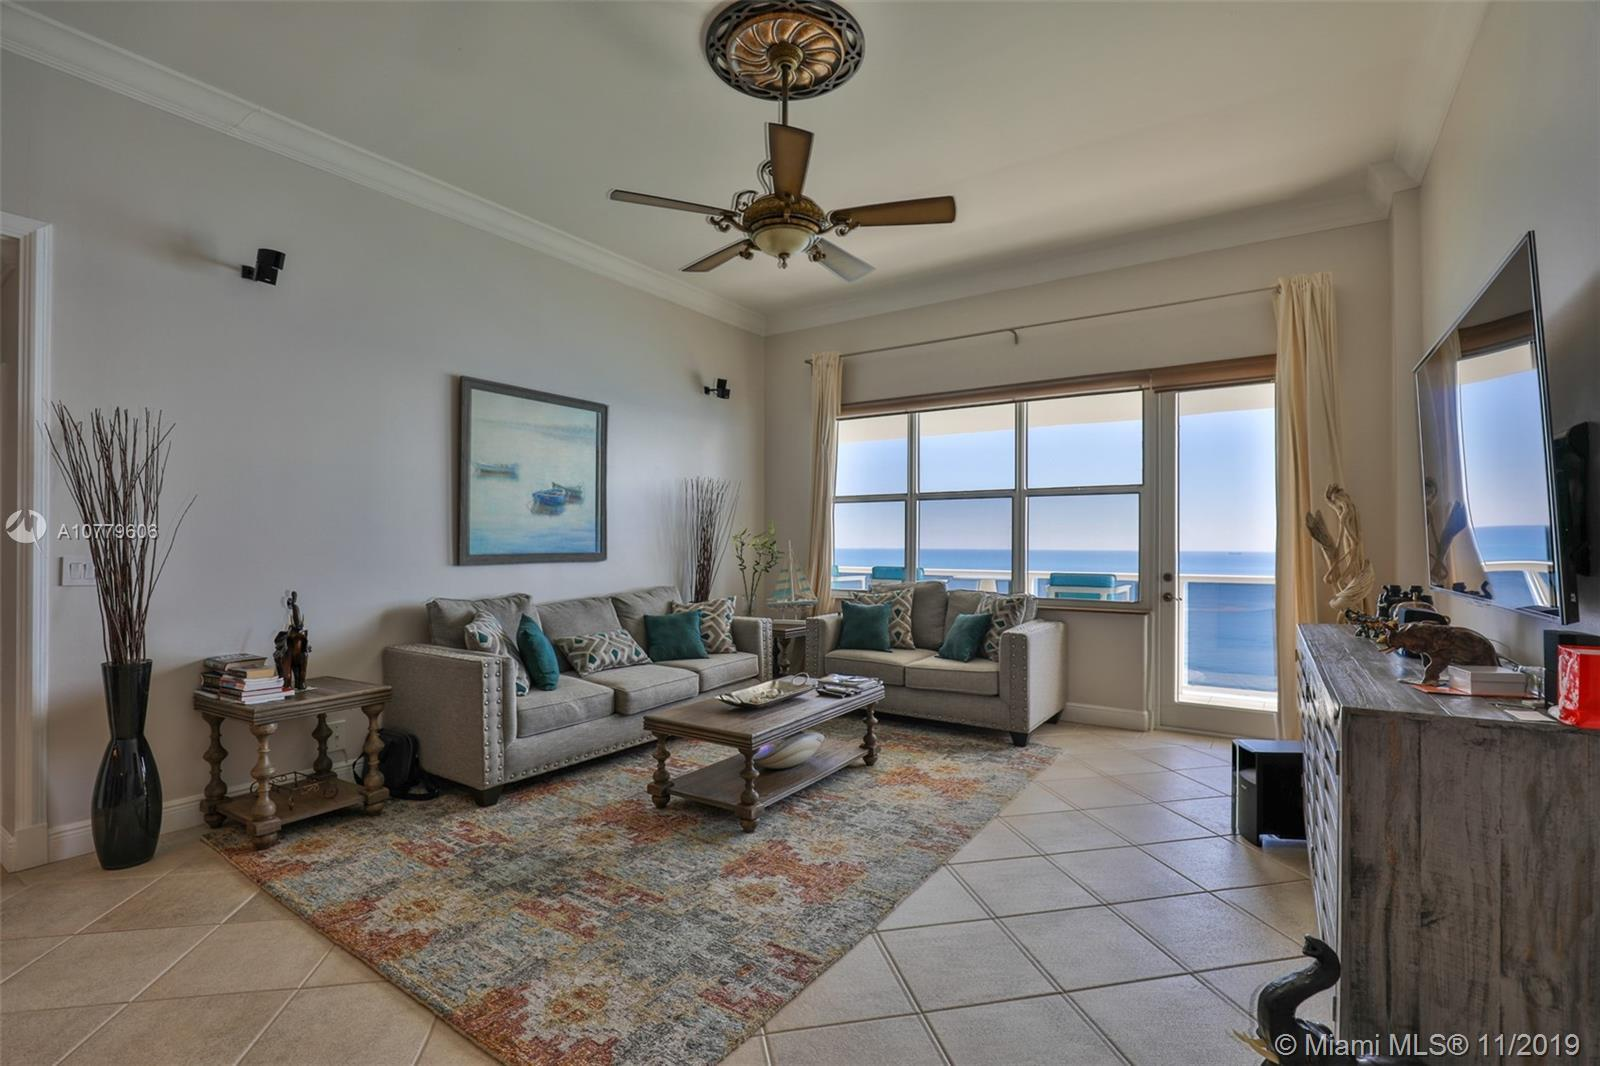 This inviting residence with views of the Atlantic Ocean will make you feel right at home. Attention